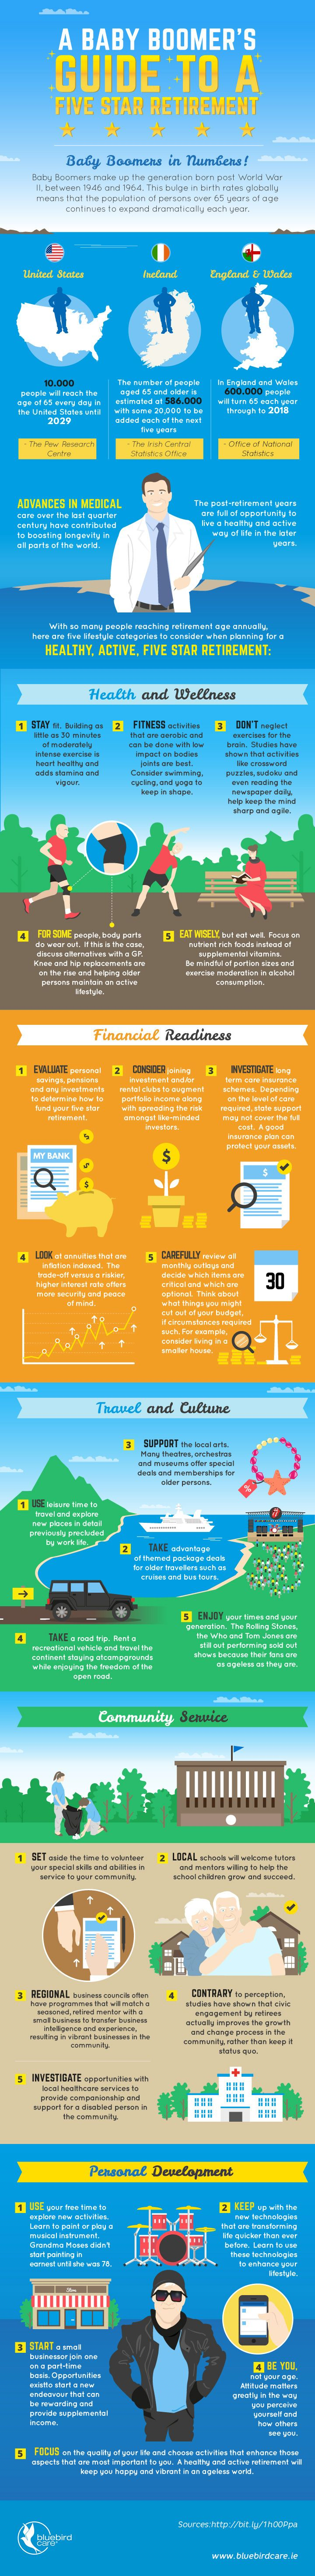 A Baby Boomers Guide To A Five Star Retirement #infographic